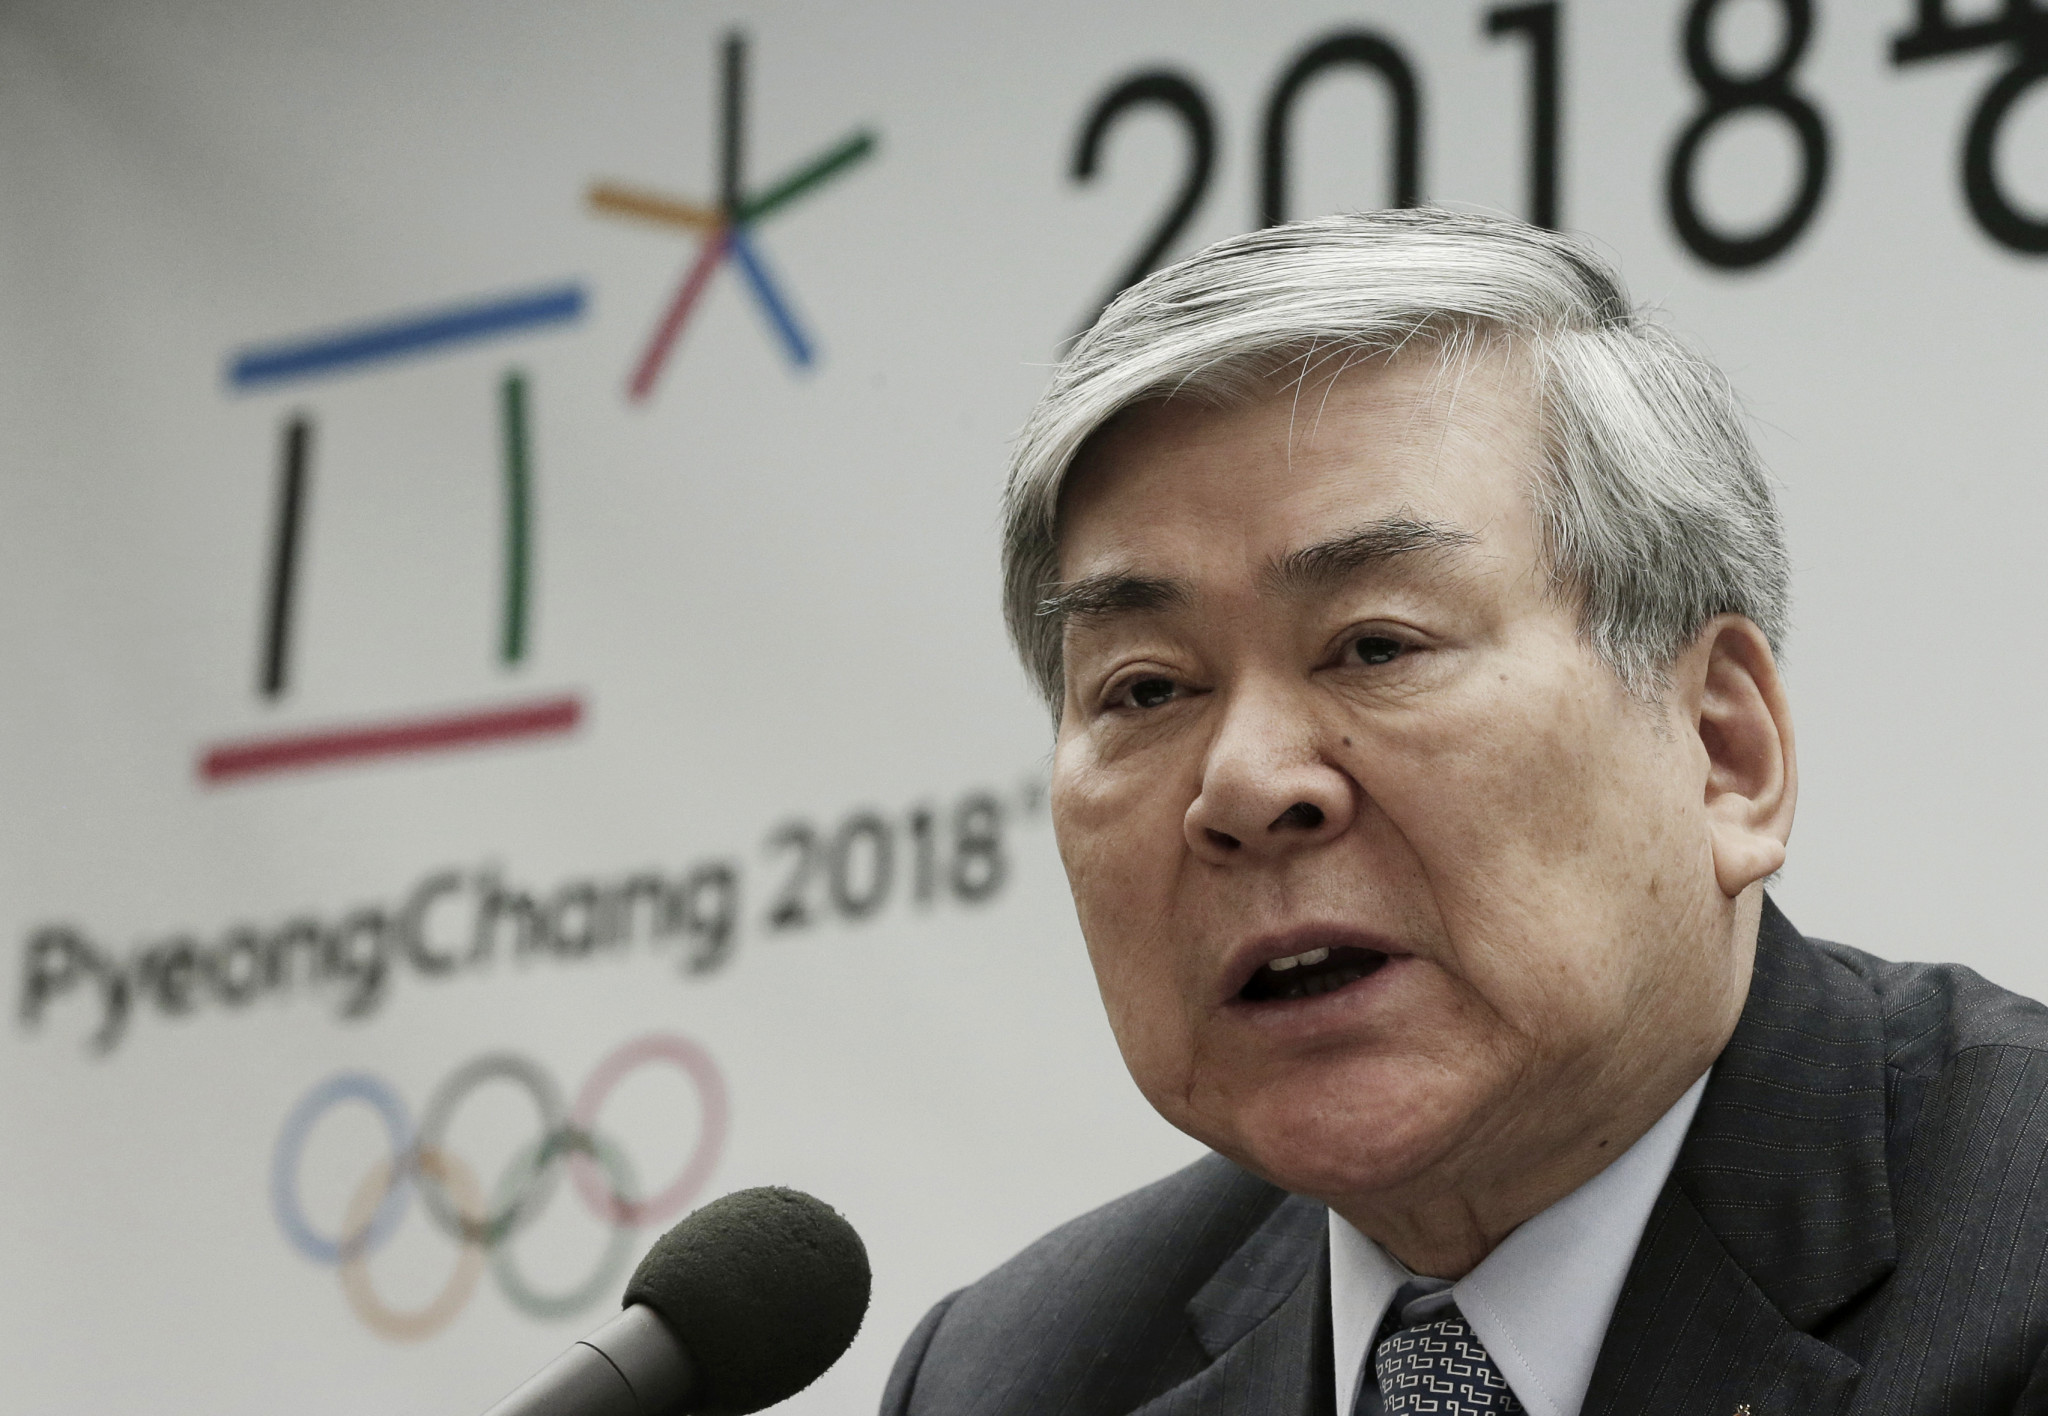 Former Pyeongchang 2018 President facing arrest over allegations he abused company funds